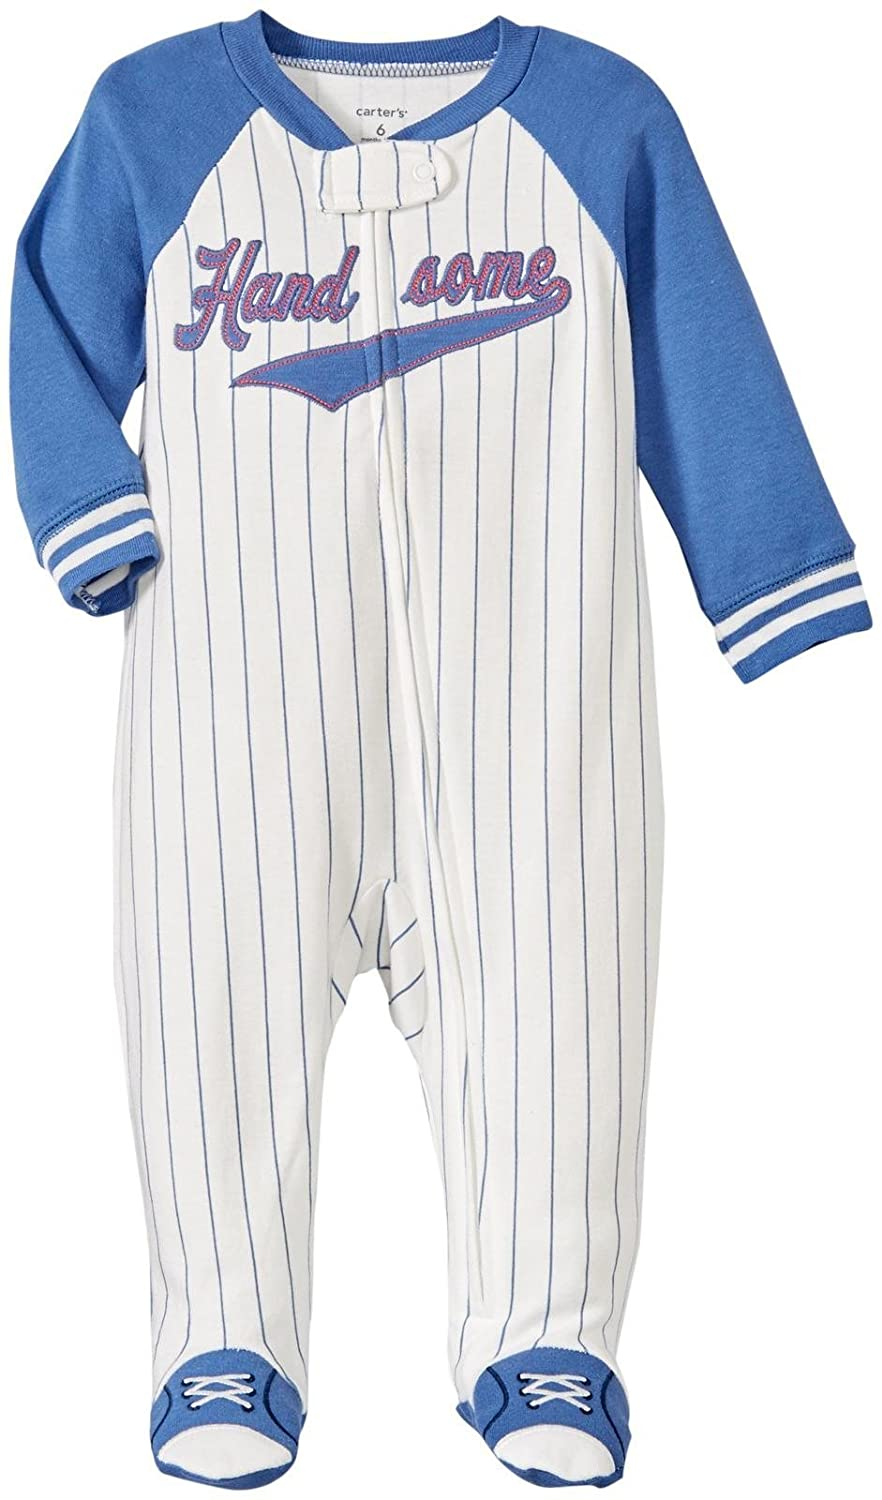 Carter's Baby Boys' Pinstriped & Handsome Footed Coverall newborn Carter's 1237653